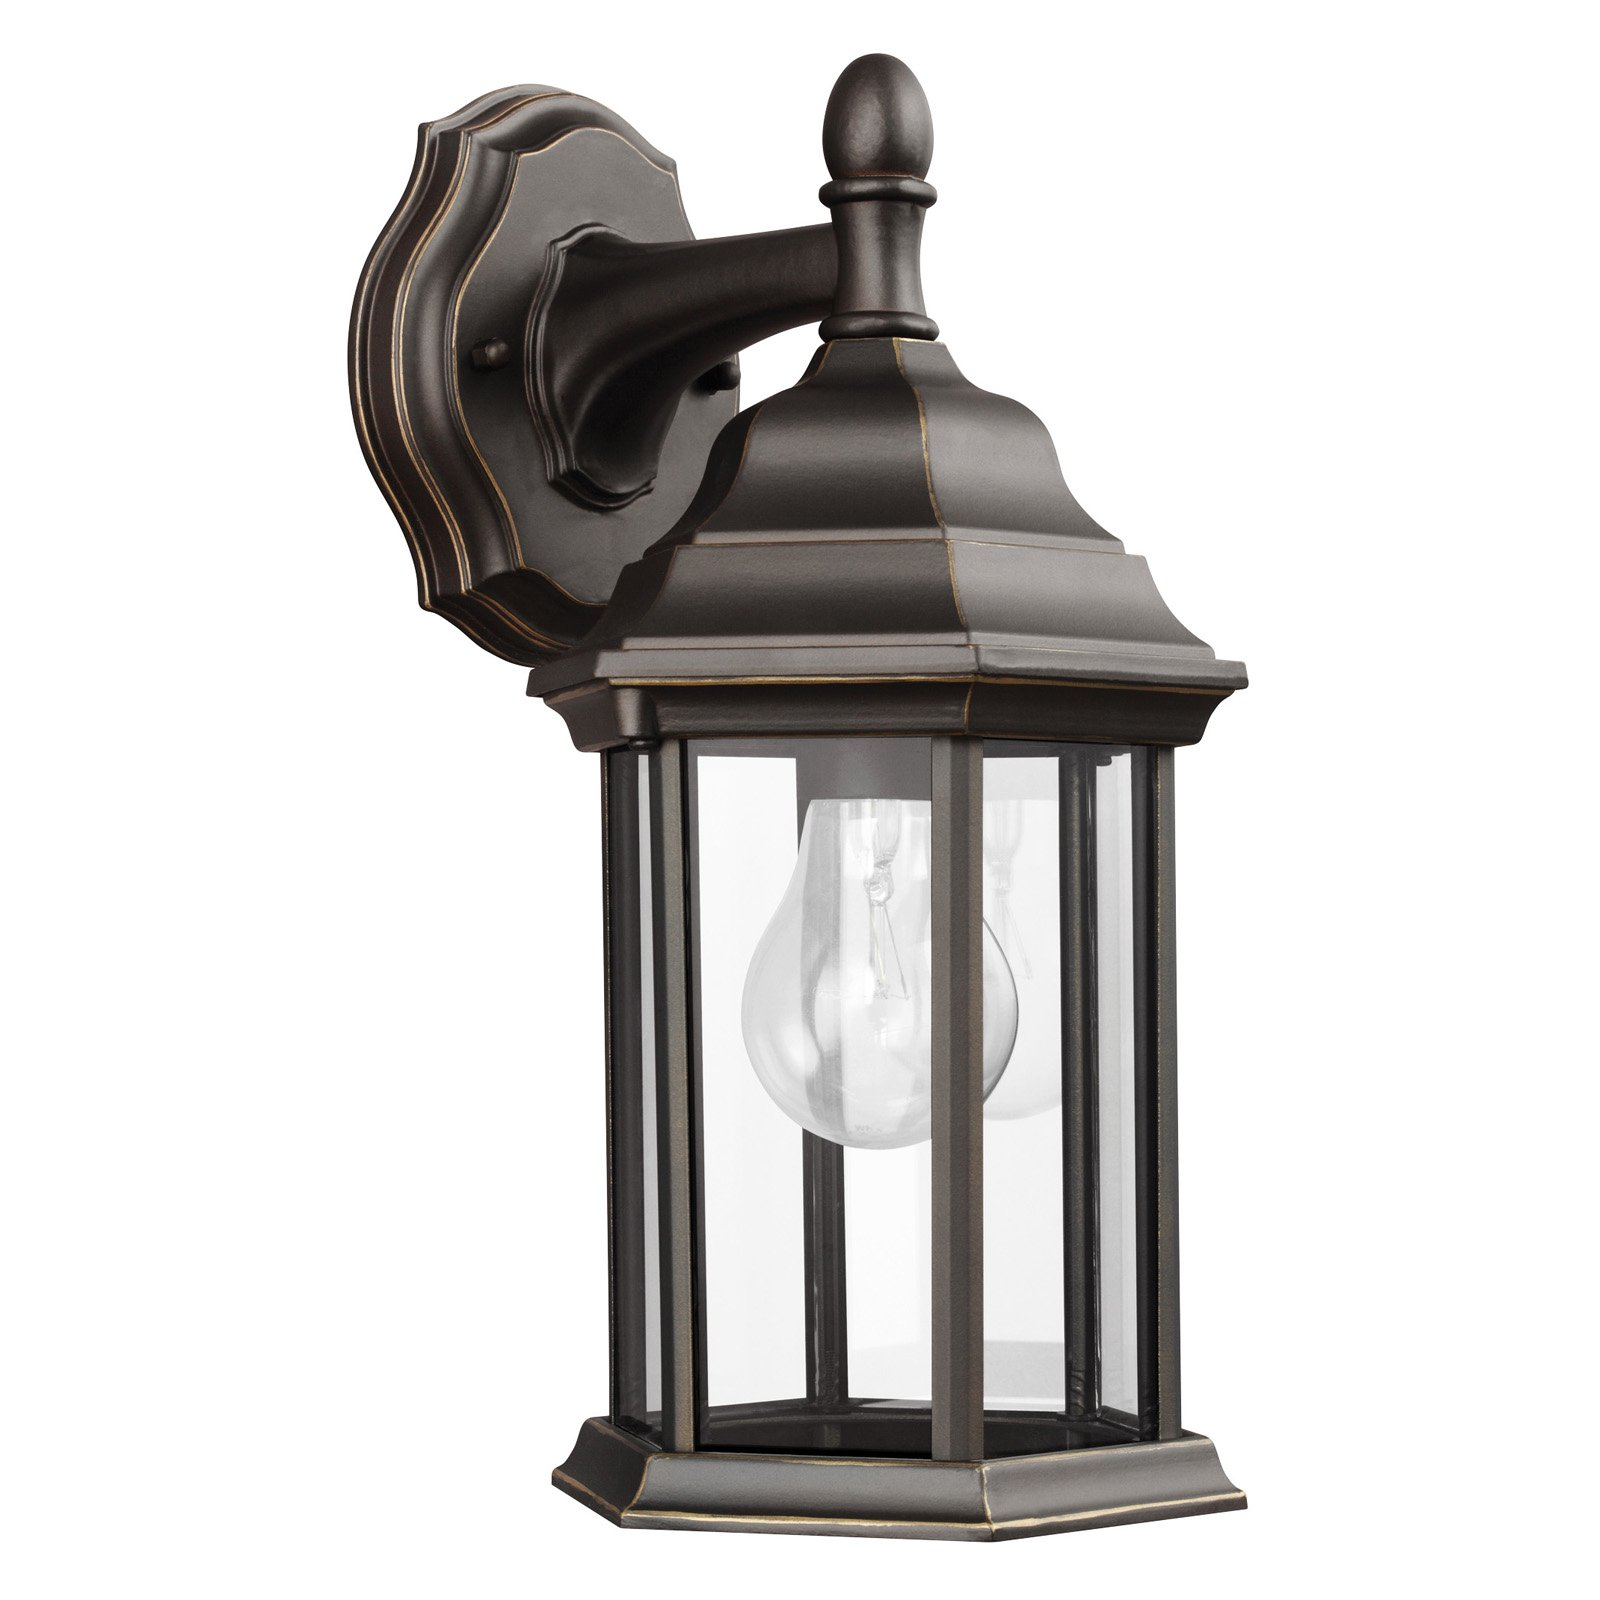 Sea Gull Lighting Sevier 8338701 Outdoor Wall Lantern